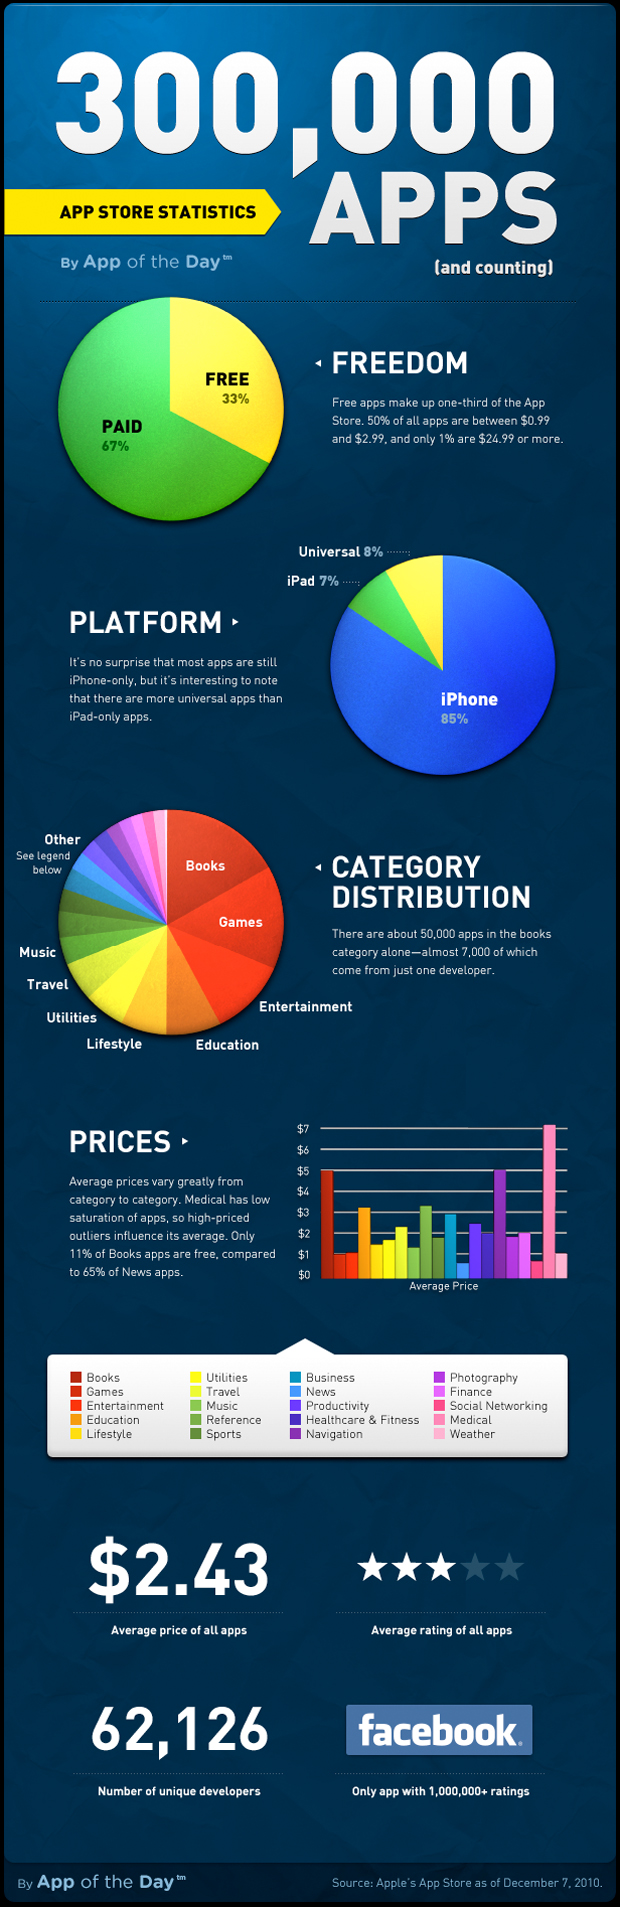 Infographic: Apple's App Store Visualized